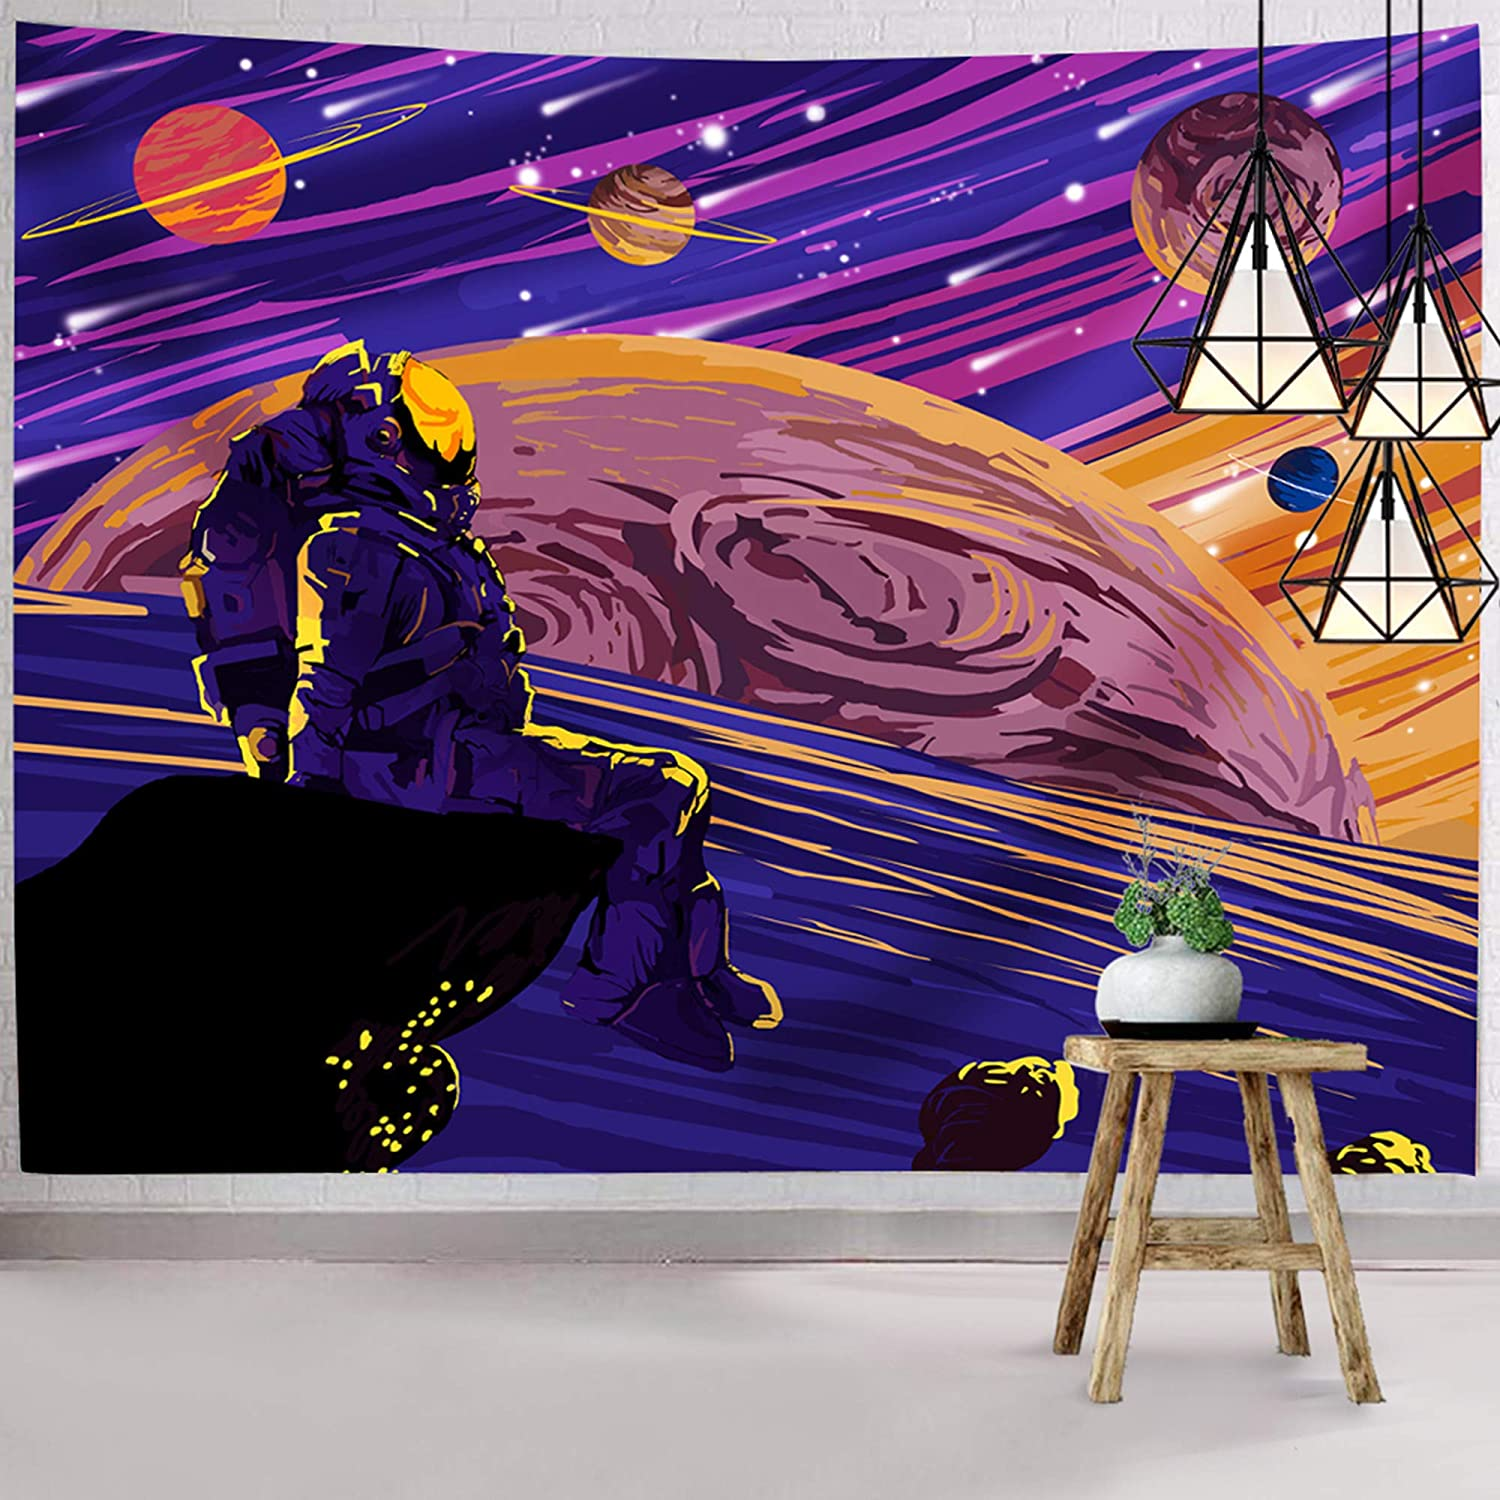 Hexagram Astronaut Tapestry, Space Tapestry Wall Hanging, Fantasy Universe Tapestry Starry Planets Wall Tapestry Home Decor for Bedroom Living Room College Dorm